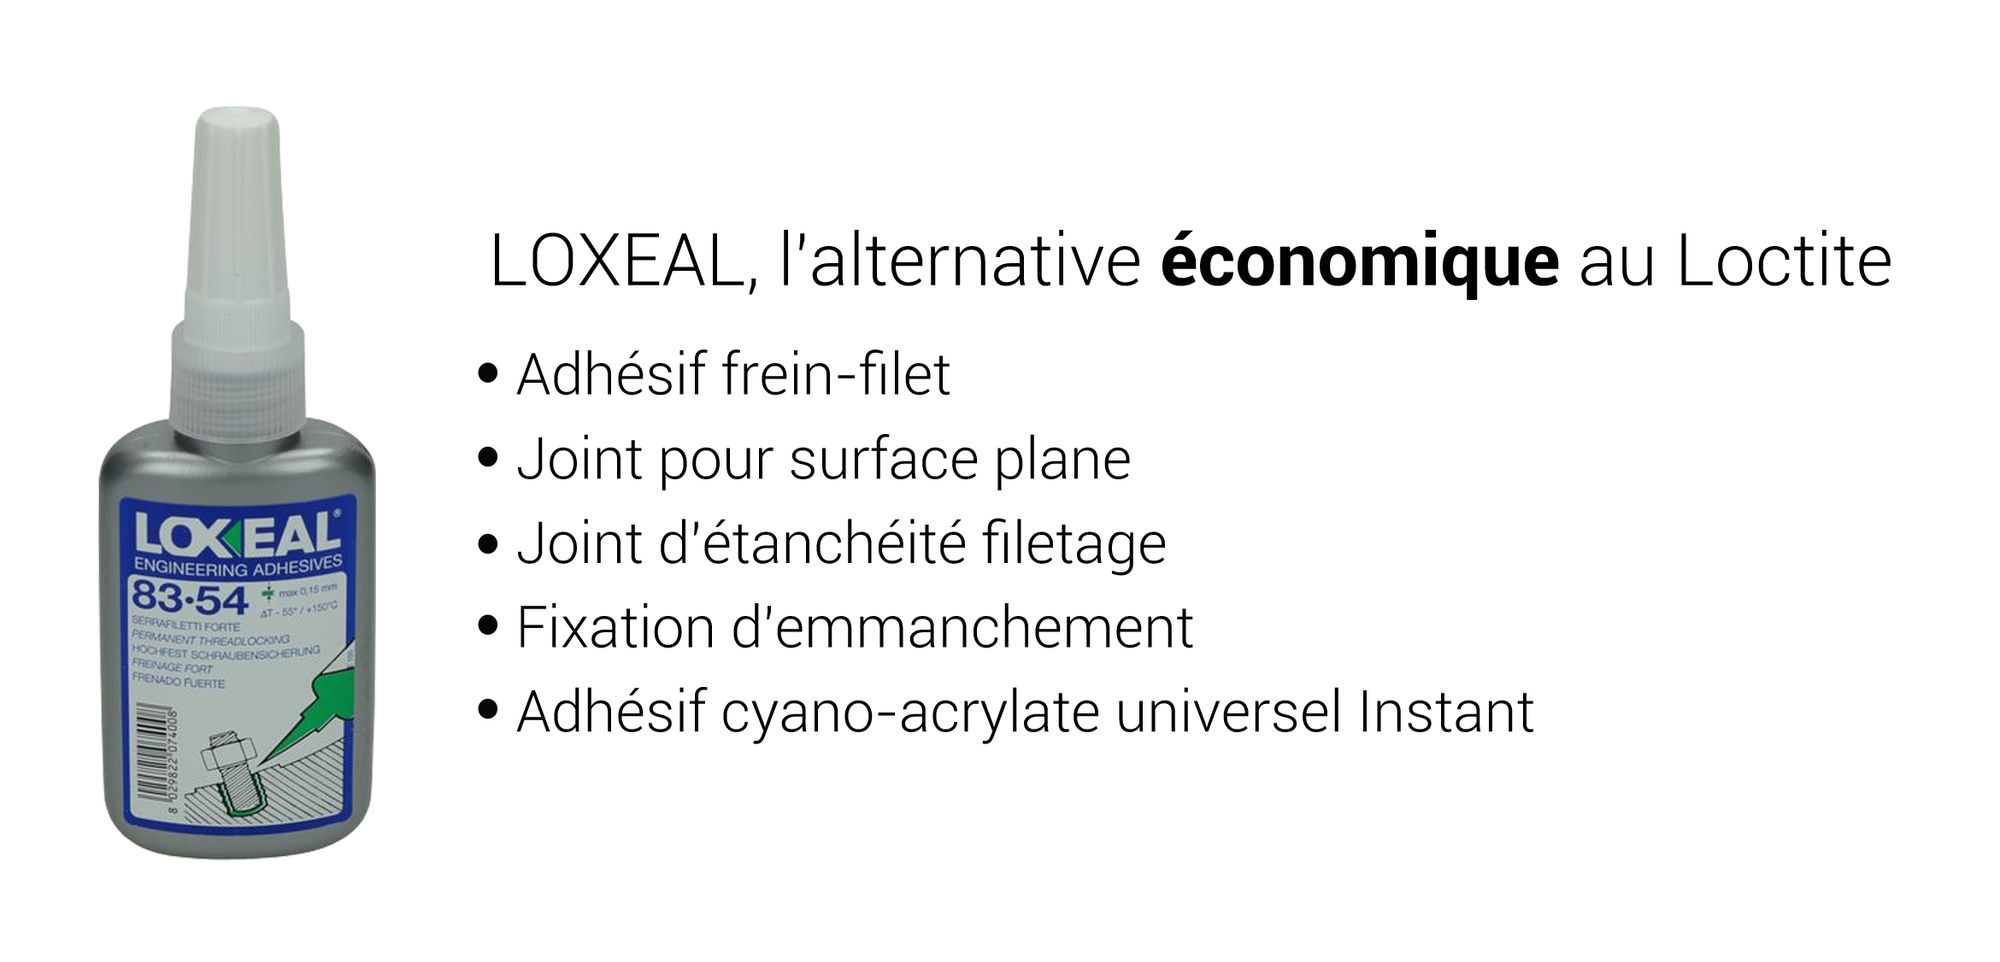 Loxeal